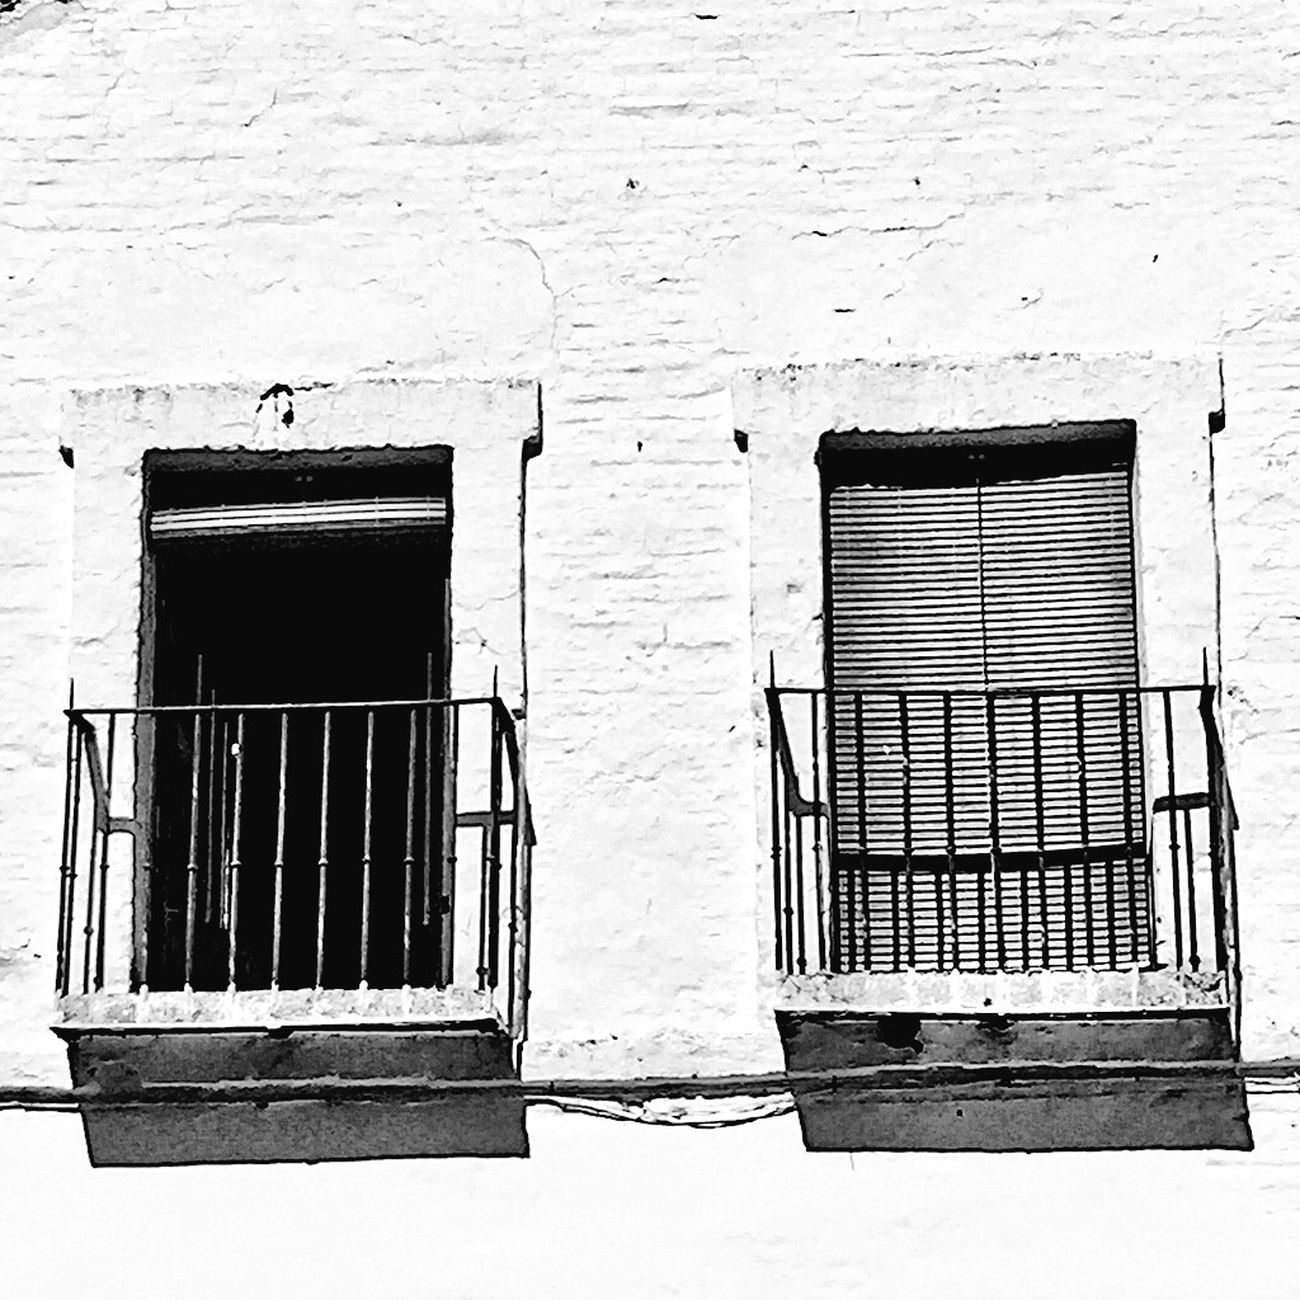 Balcones al sol Gerena EyeEm Best Shots Monochrome Streetphoto_bw Blackandwhite Bw_collection Black And White Urban Sevilla Arquitecture